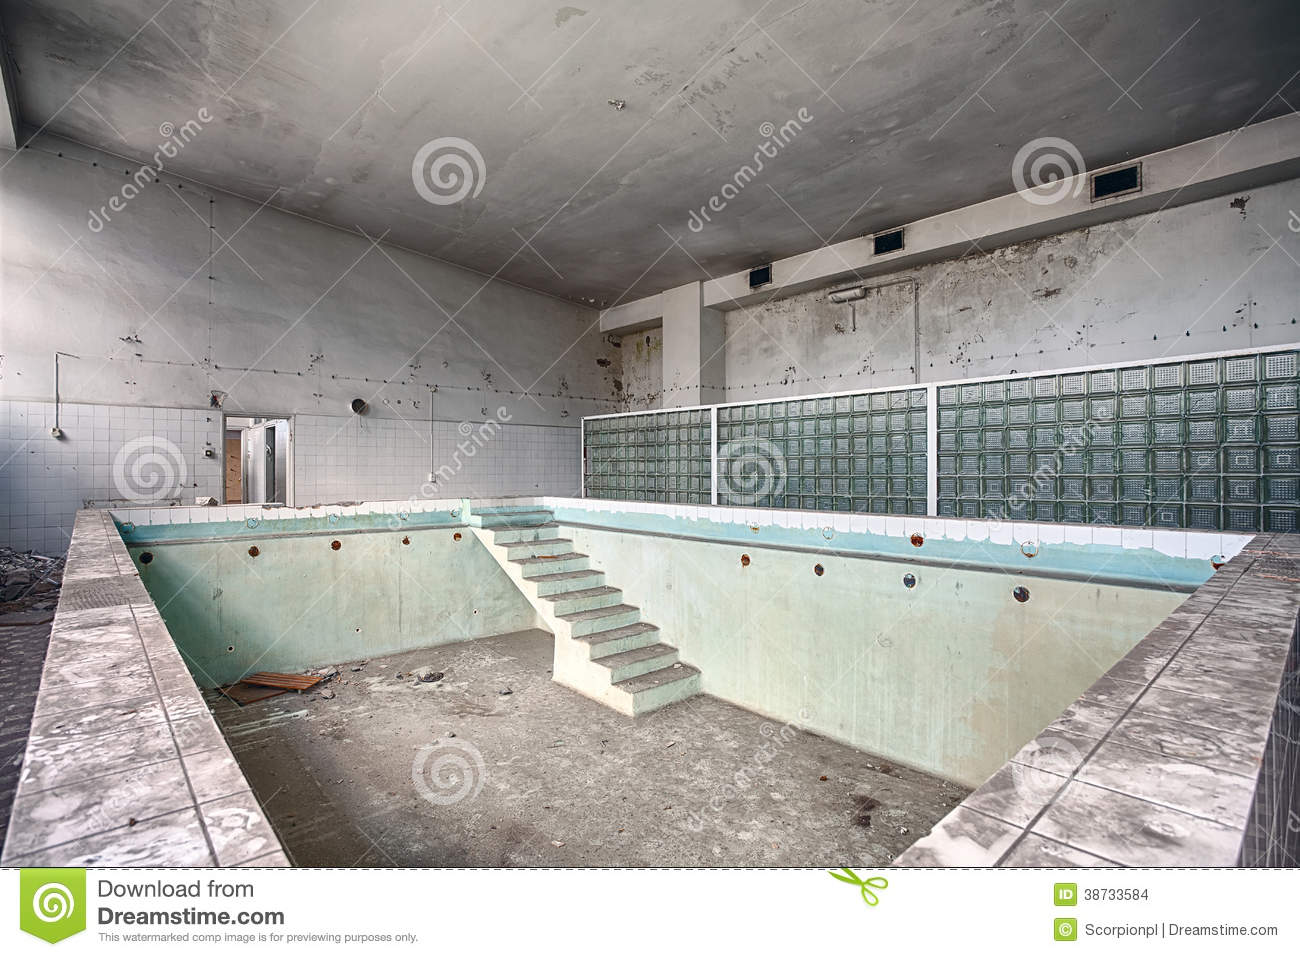 Swimming pool in a ruined building stock images image for What to do with old swimming pool